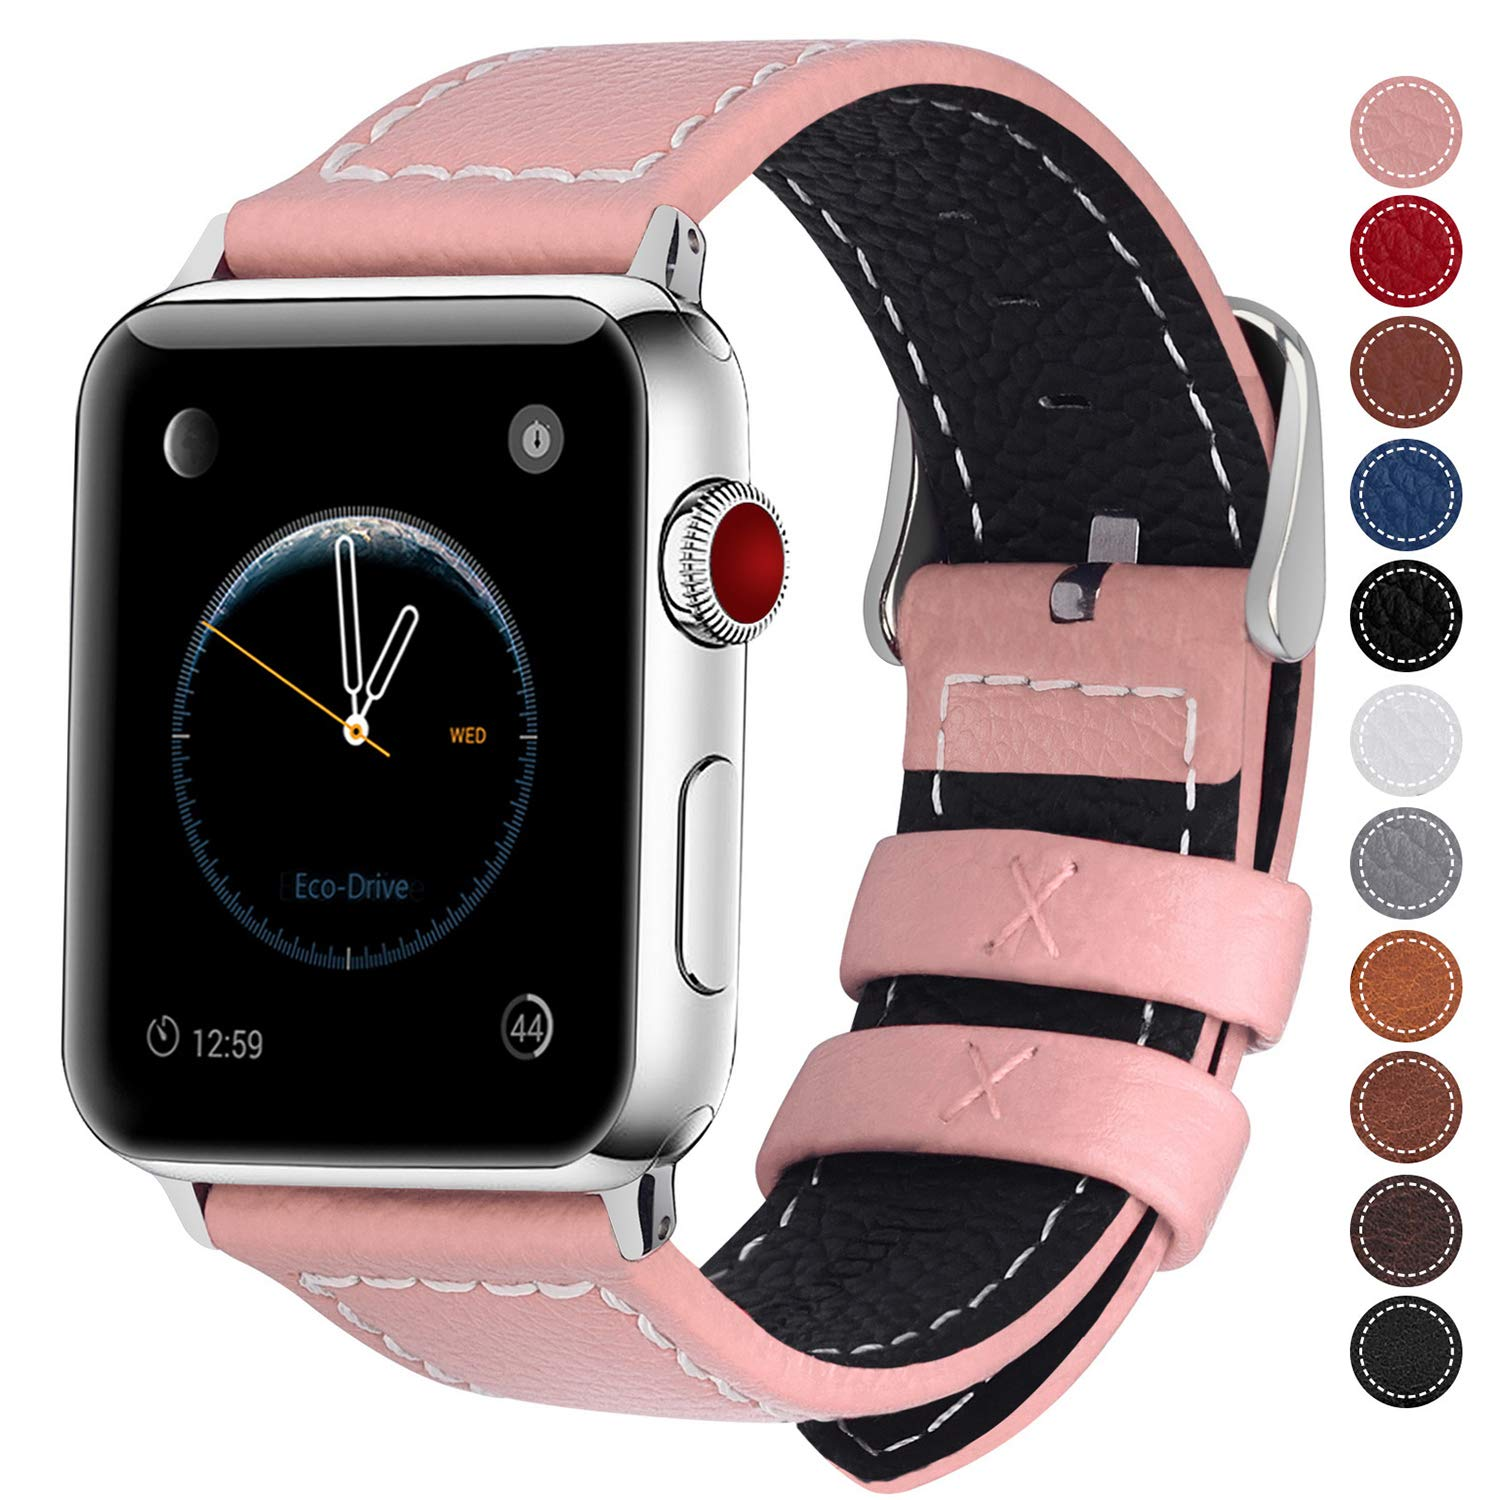 Fullmosa Compatible Apple Watch Bands 42mm 44mm and 38mm 40mm, Jan Series Lichi Texture Calf Leather Strap Replacement Band/Strap/Bracelet for iWatch Series 4, Series 3, Series 2, Series 1, Sport and Edition Versions 2015 2016 2017 product image